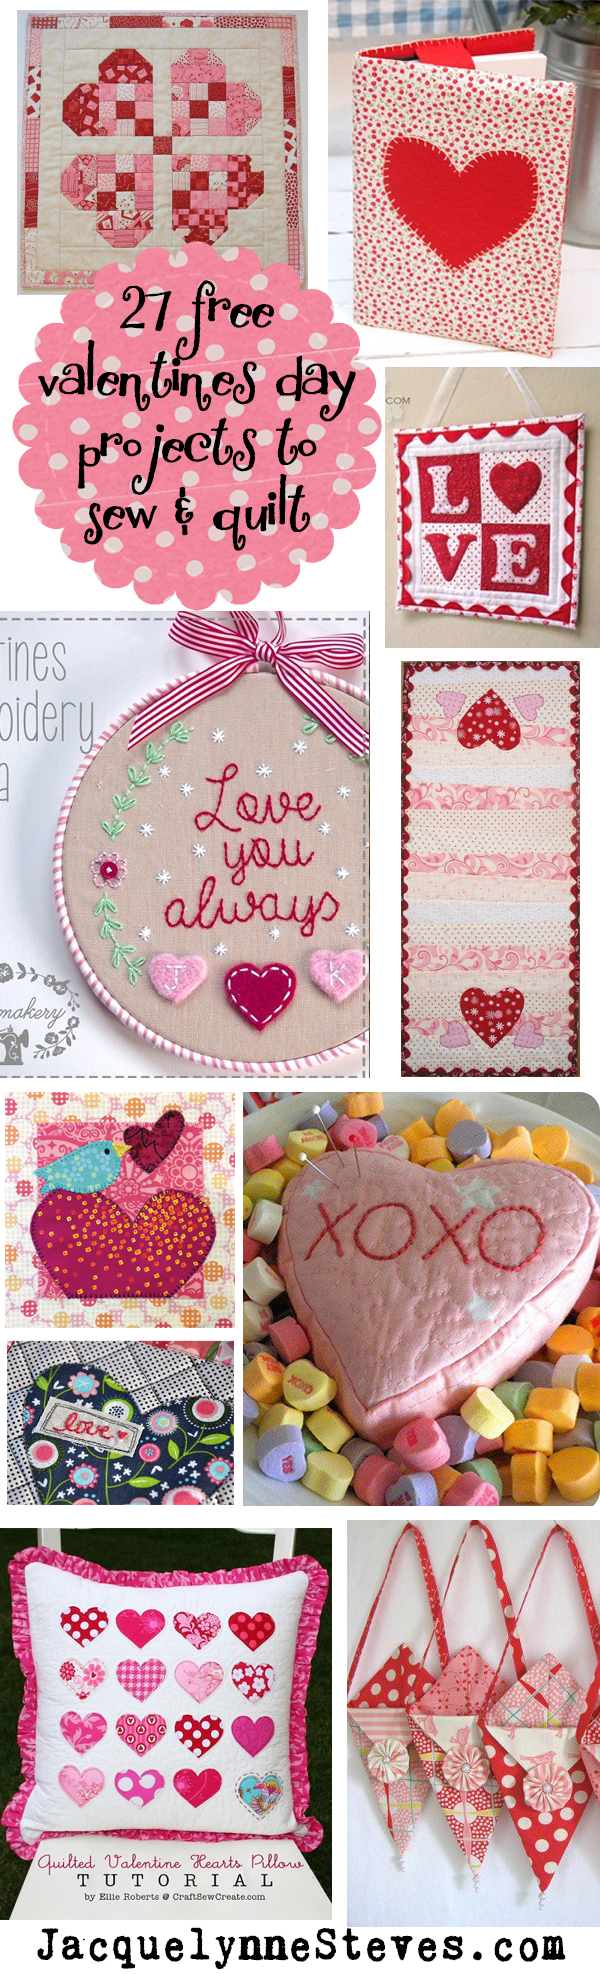 27 Free Valentine's Day Patterns & Projects to Sew and Quilt